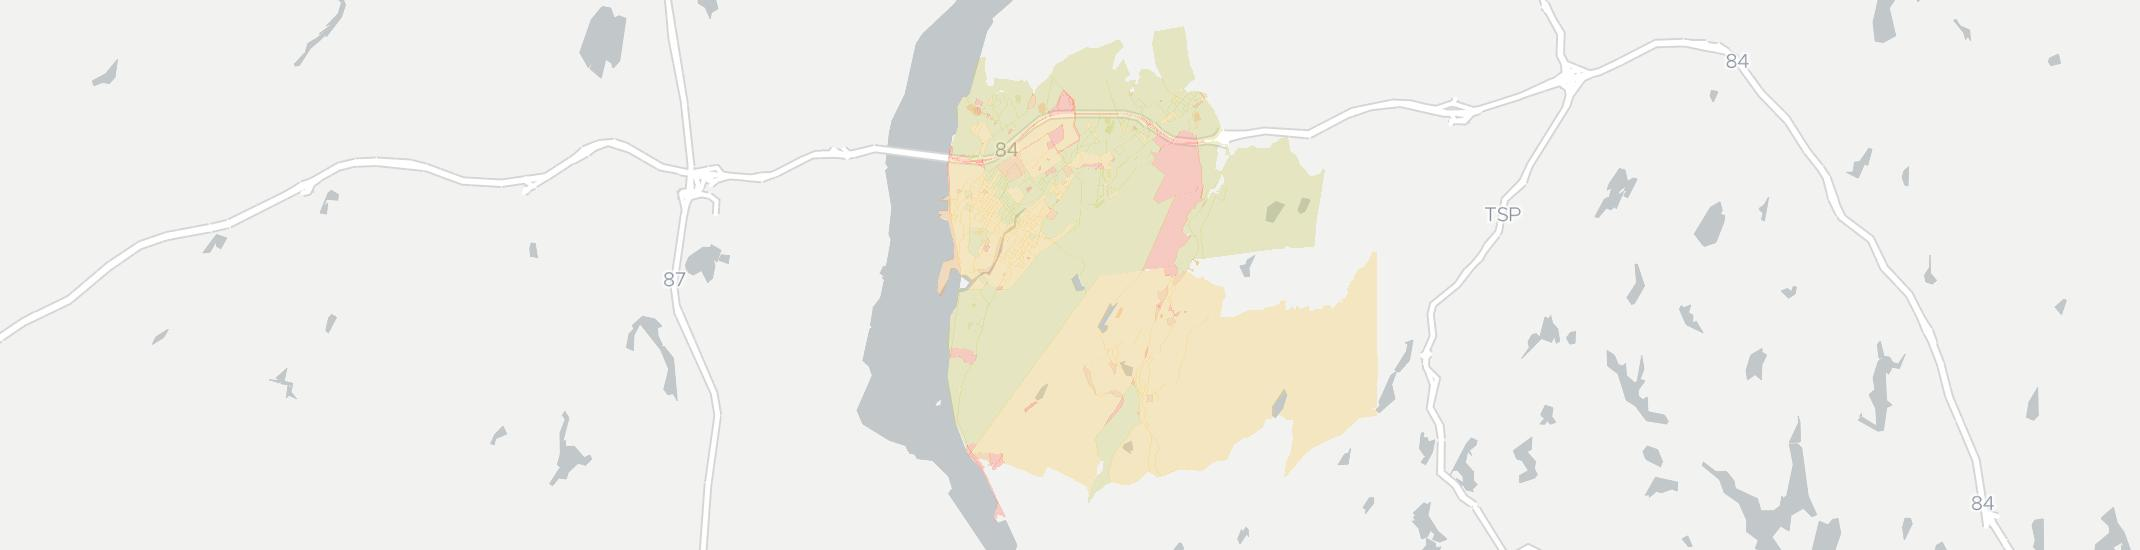 Beacon Internet Competition Map. Click for interactive map.